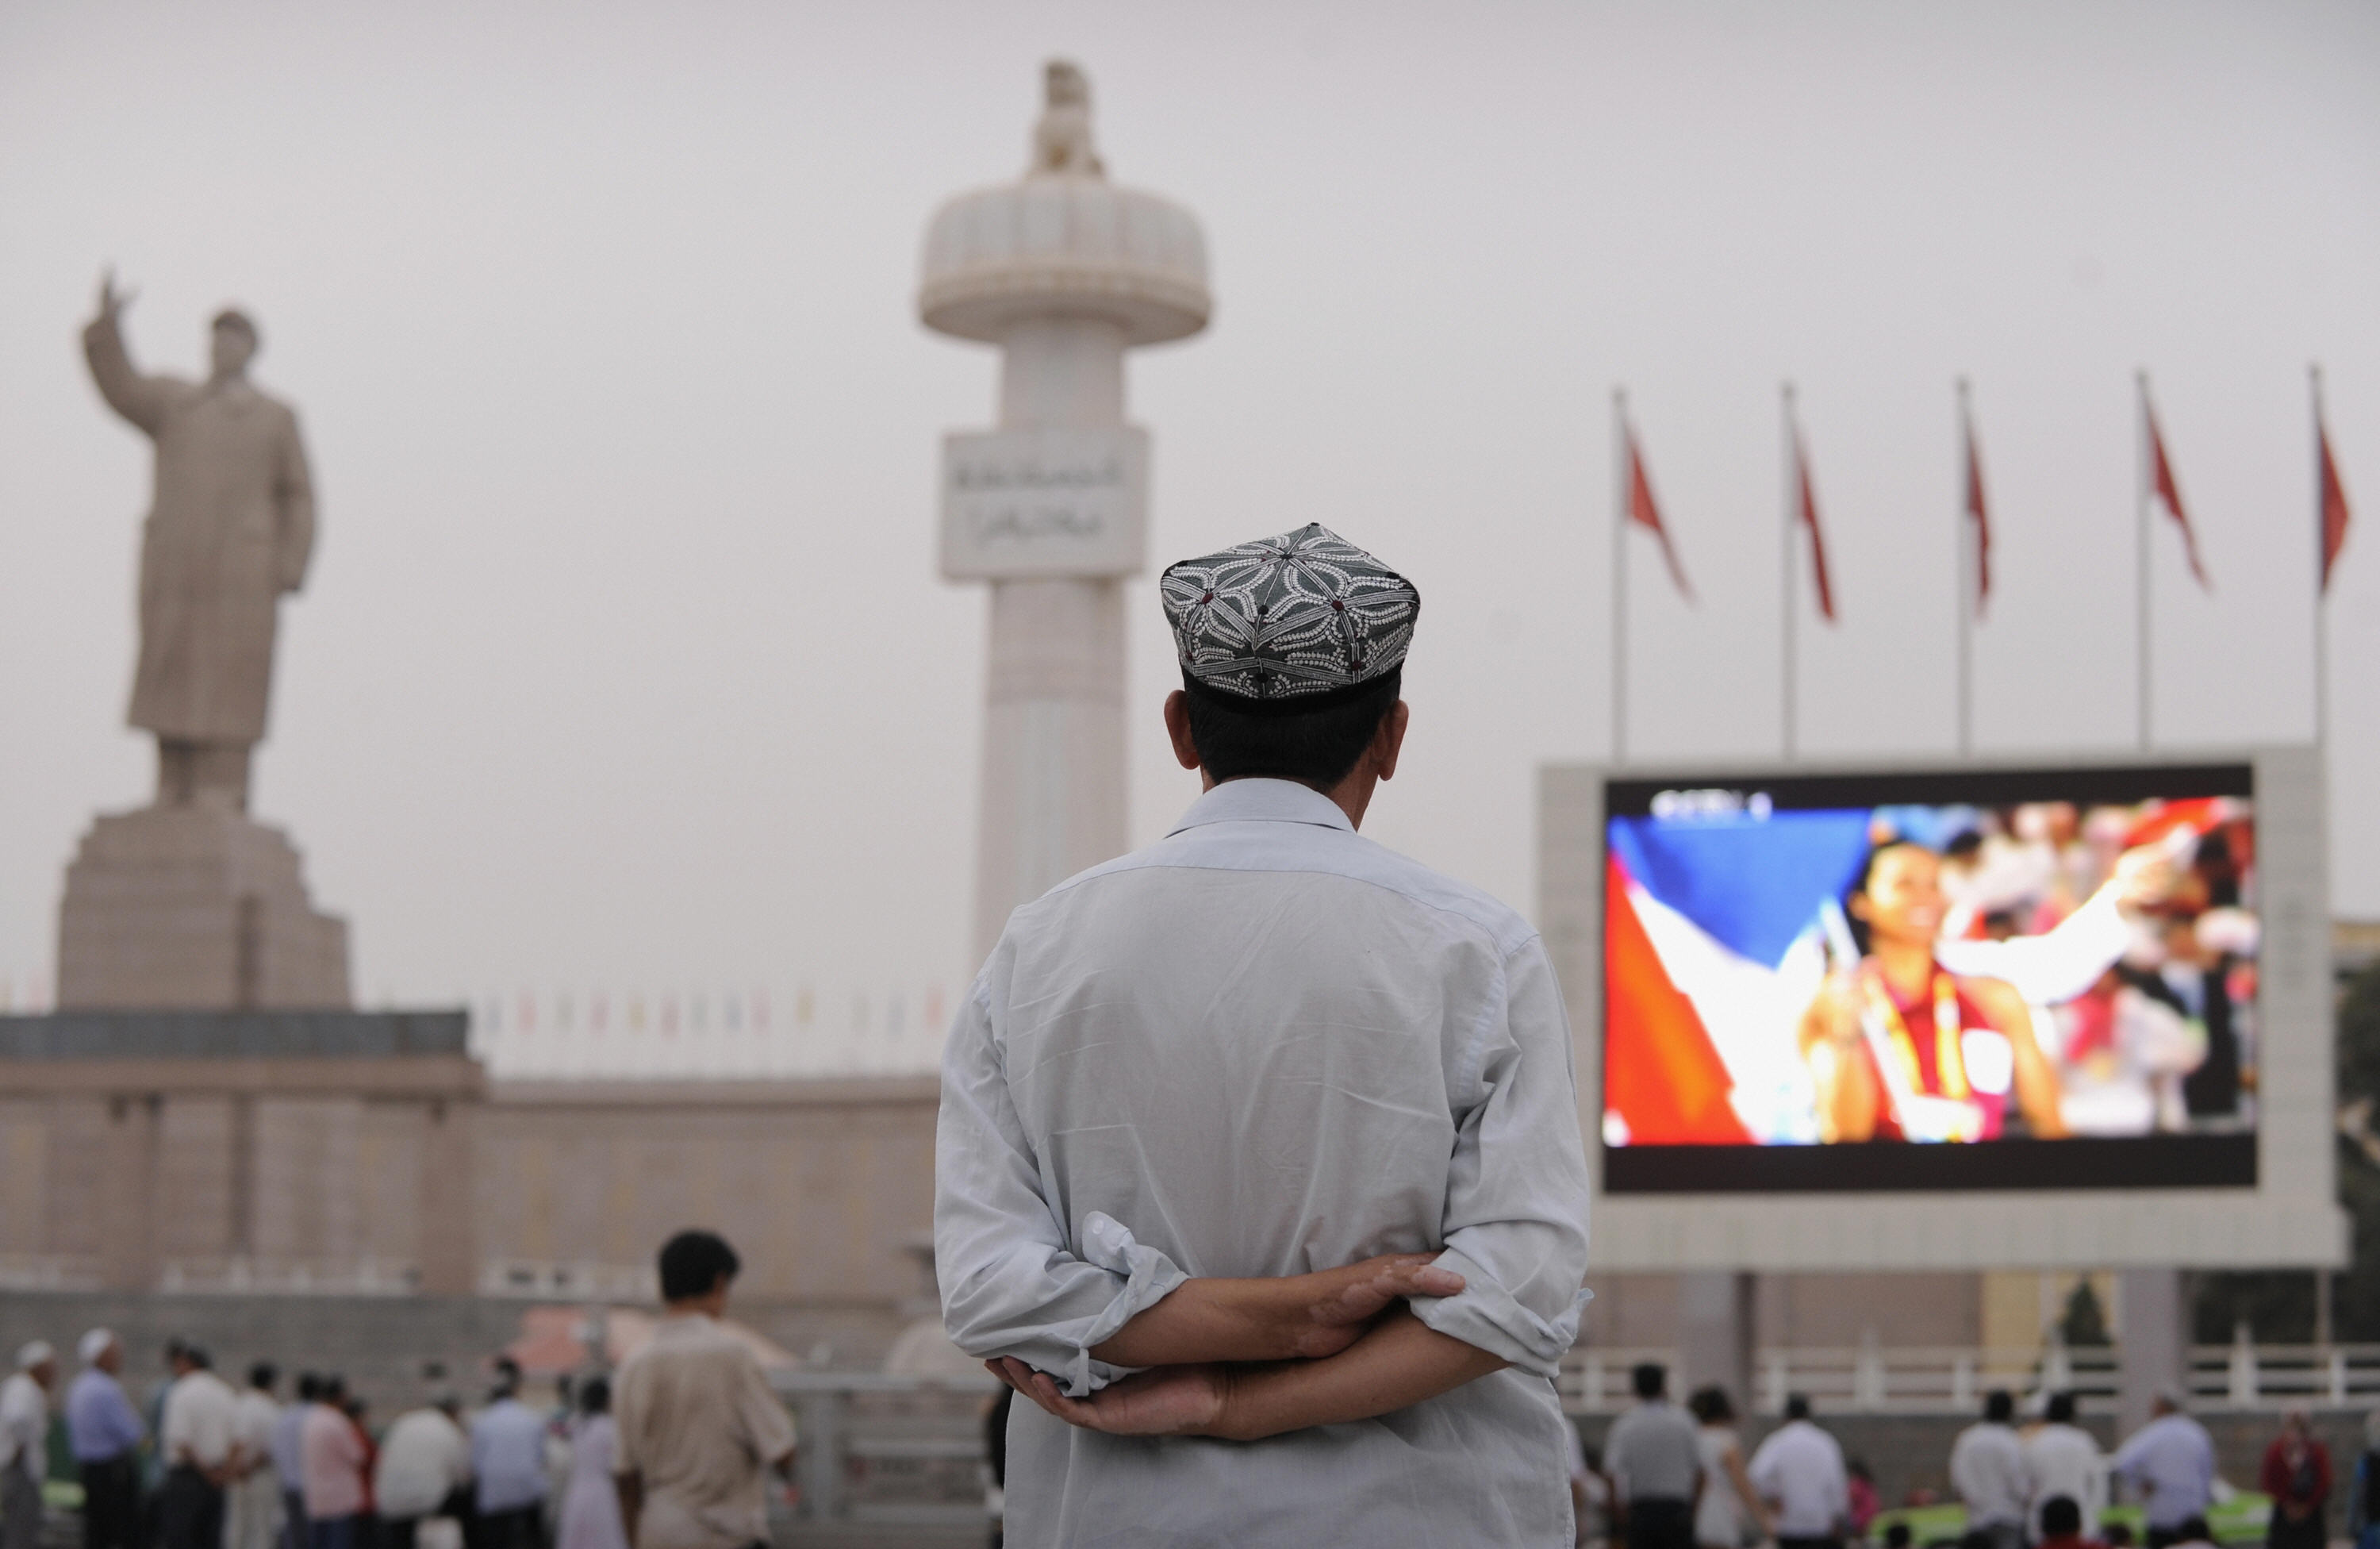 A Uyghur man watches the opening ceremony of the Olympic Games on a big screen in Kashgar in Xinjiang province on August 8, 2008.